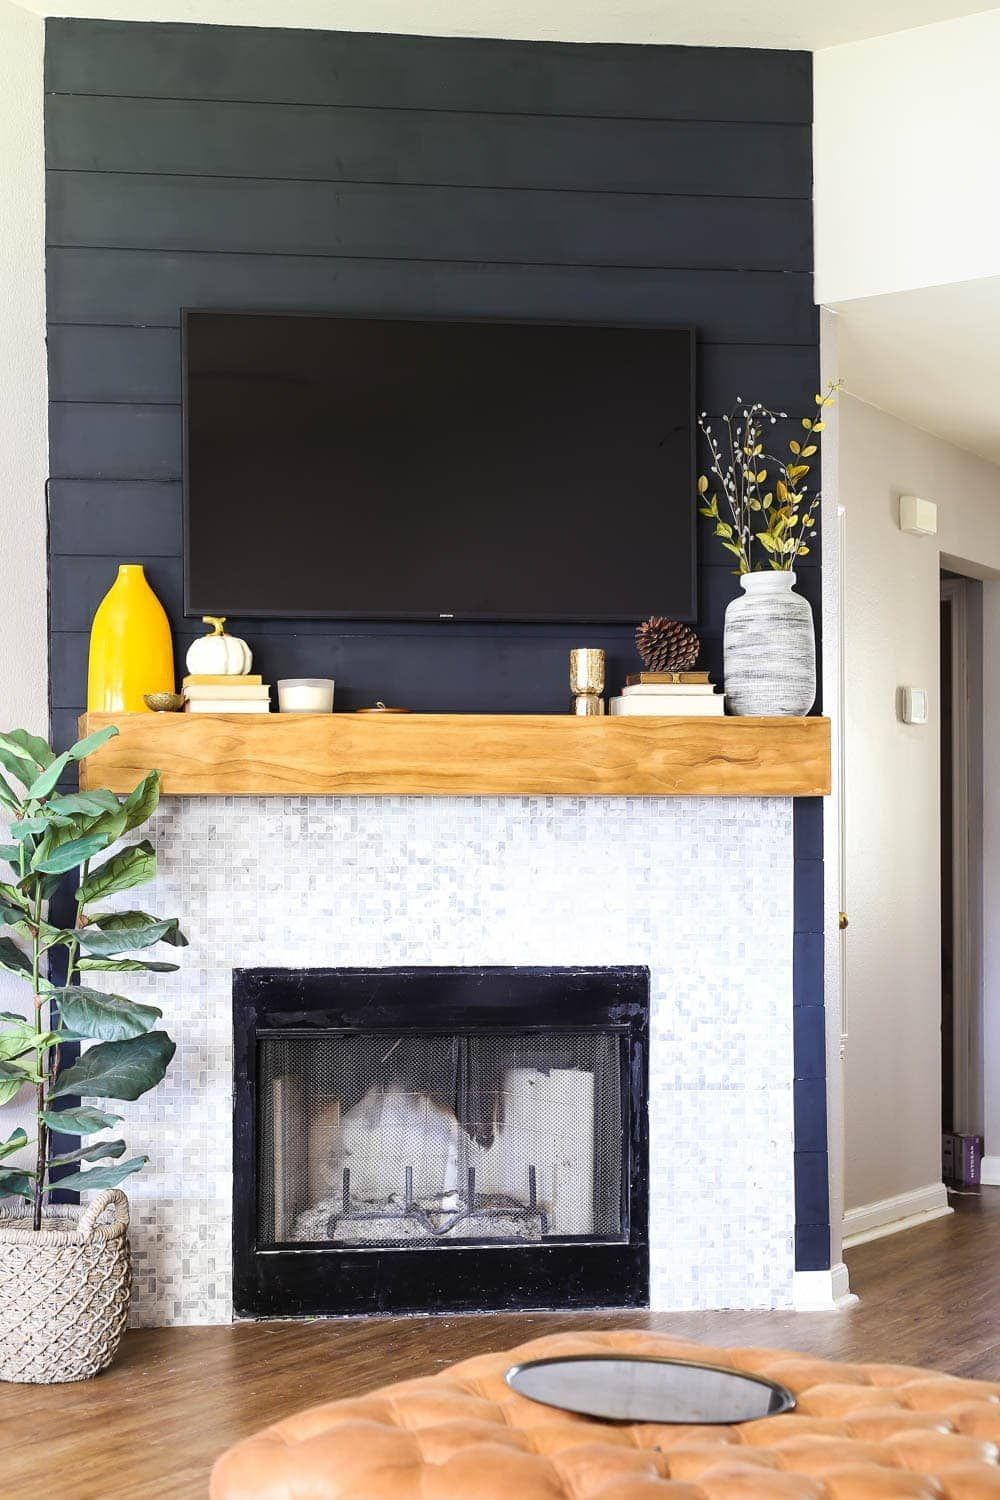 Excellent Screen Fireplace Makeover with tv Popular Presently there are loads of...-- Excellent Screen Fireplace Makeover with tv Popular Presently there are loads of interesting fireplace remodel concepts of course, if you are looking for the most beneficia #Excellent #Fireplace #Makeover #Popular The Effective Pictures We Offer You About round fireplace makeover  A quality picture can tell you many things. You can find the most beautiful pictures that can be presented to you about  fireplace